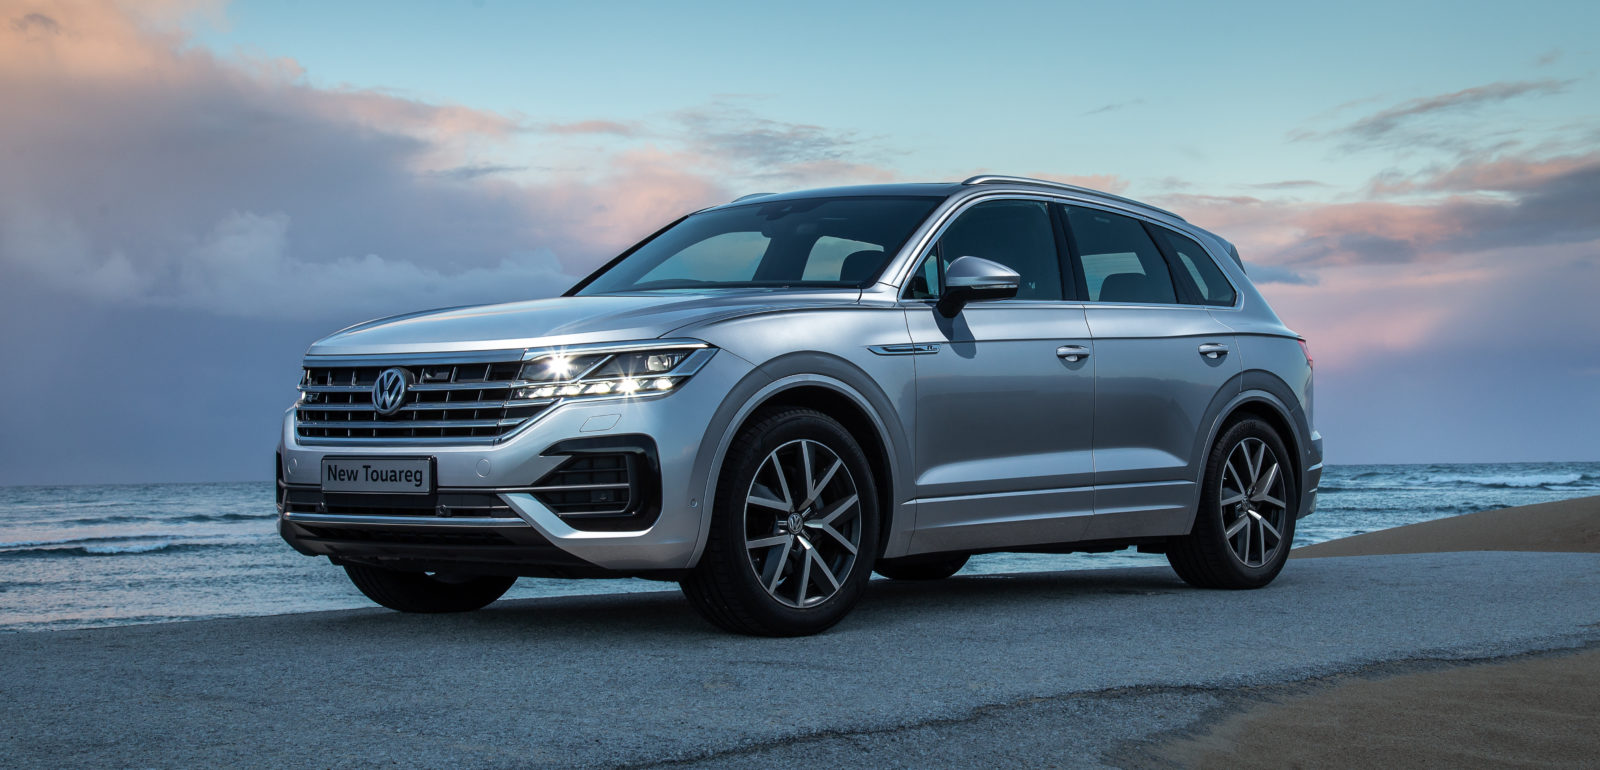 VW Touareg 3 0 V6 TDI Executive R-Line: A cut above